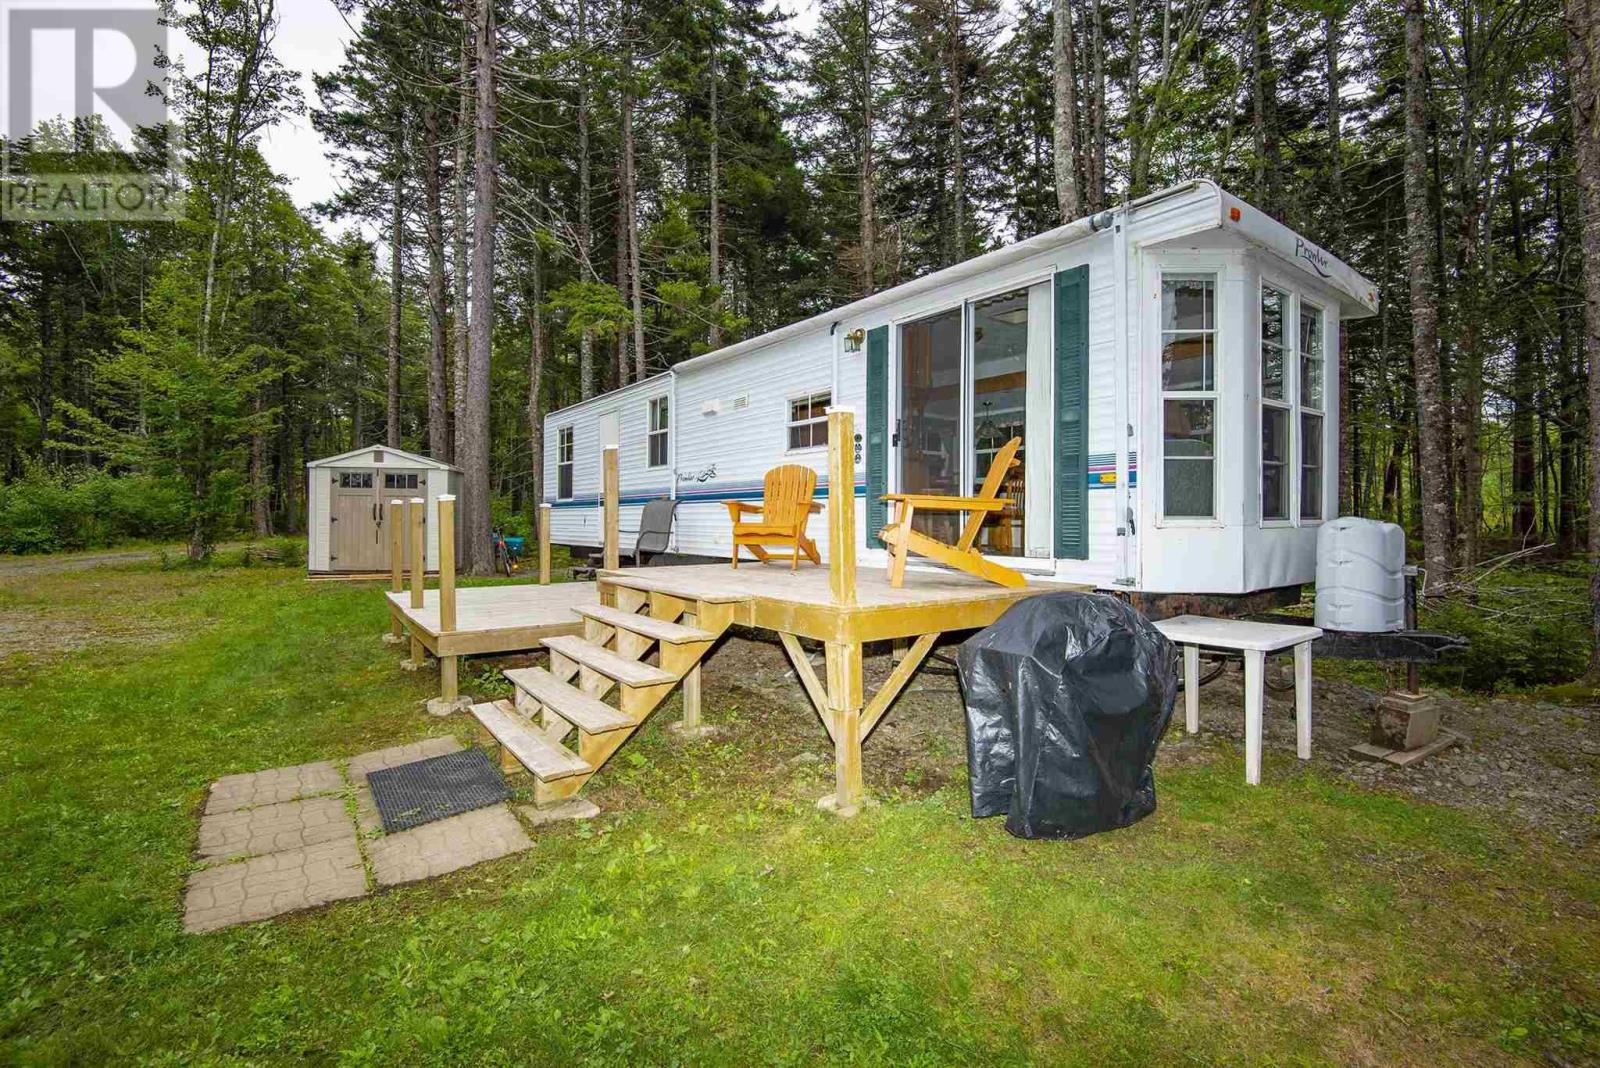 residential property for For sale at Belliveaus Cove, Nova Scotia